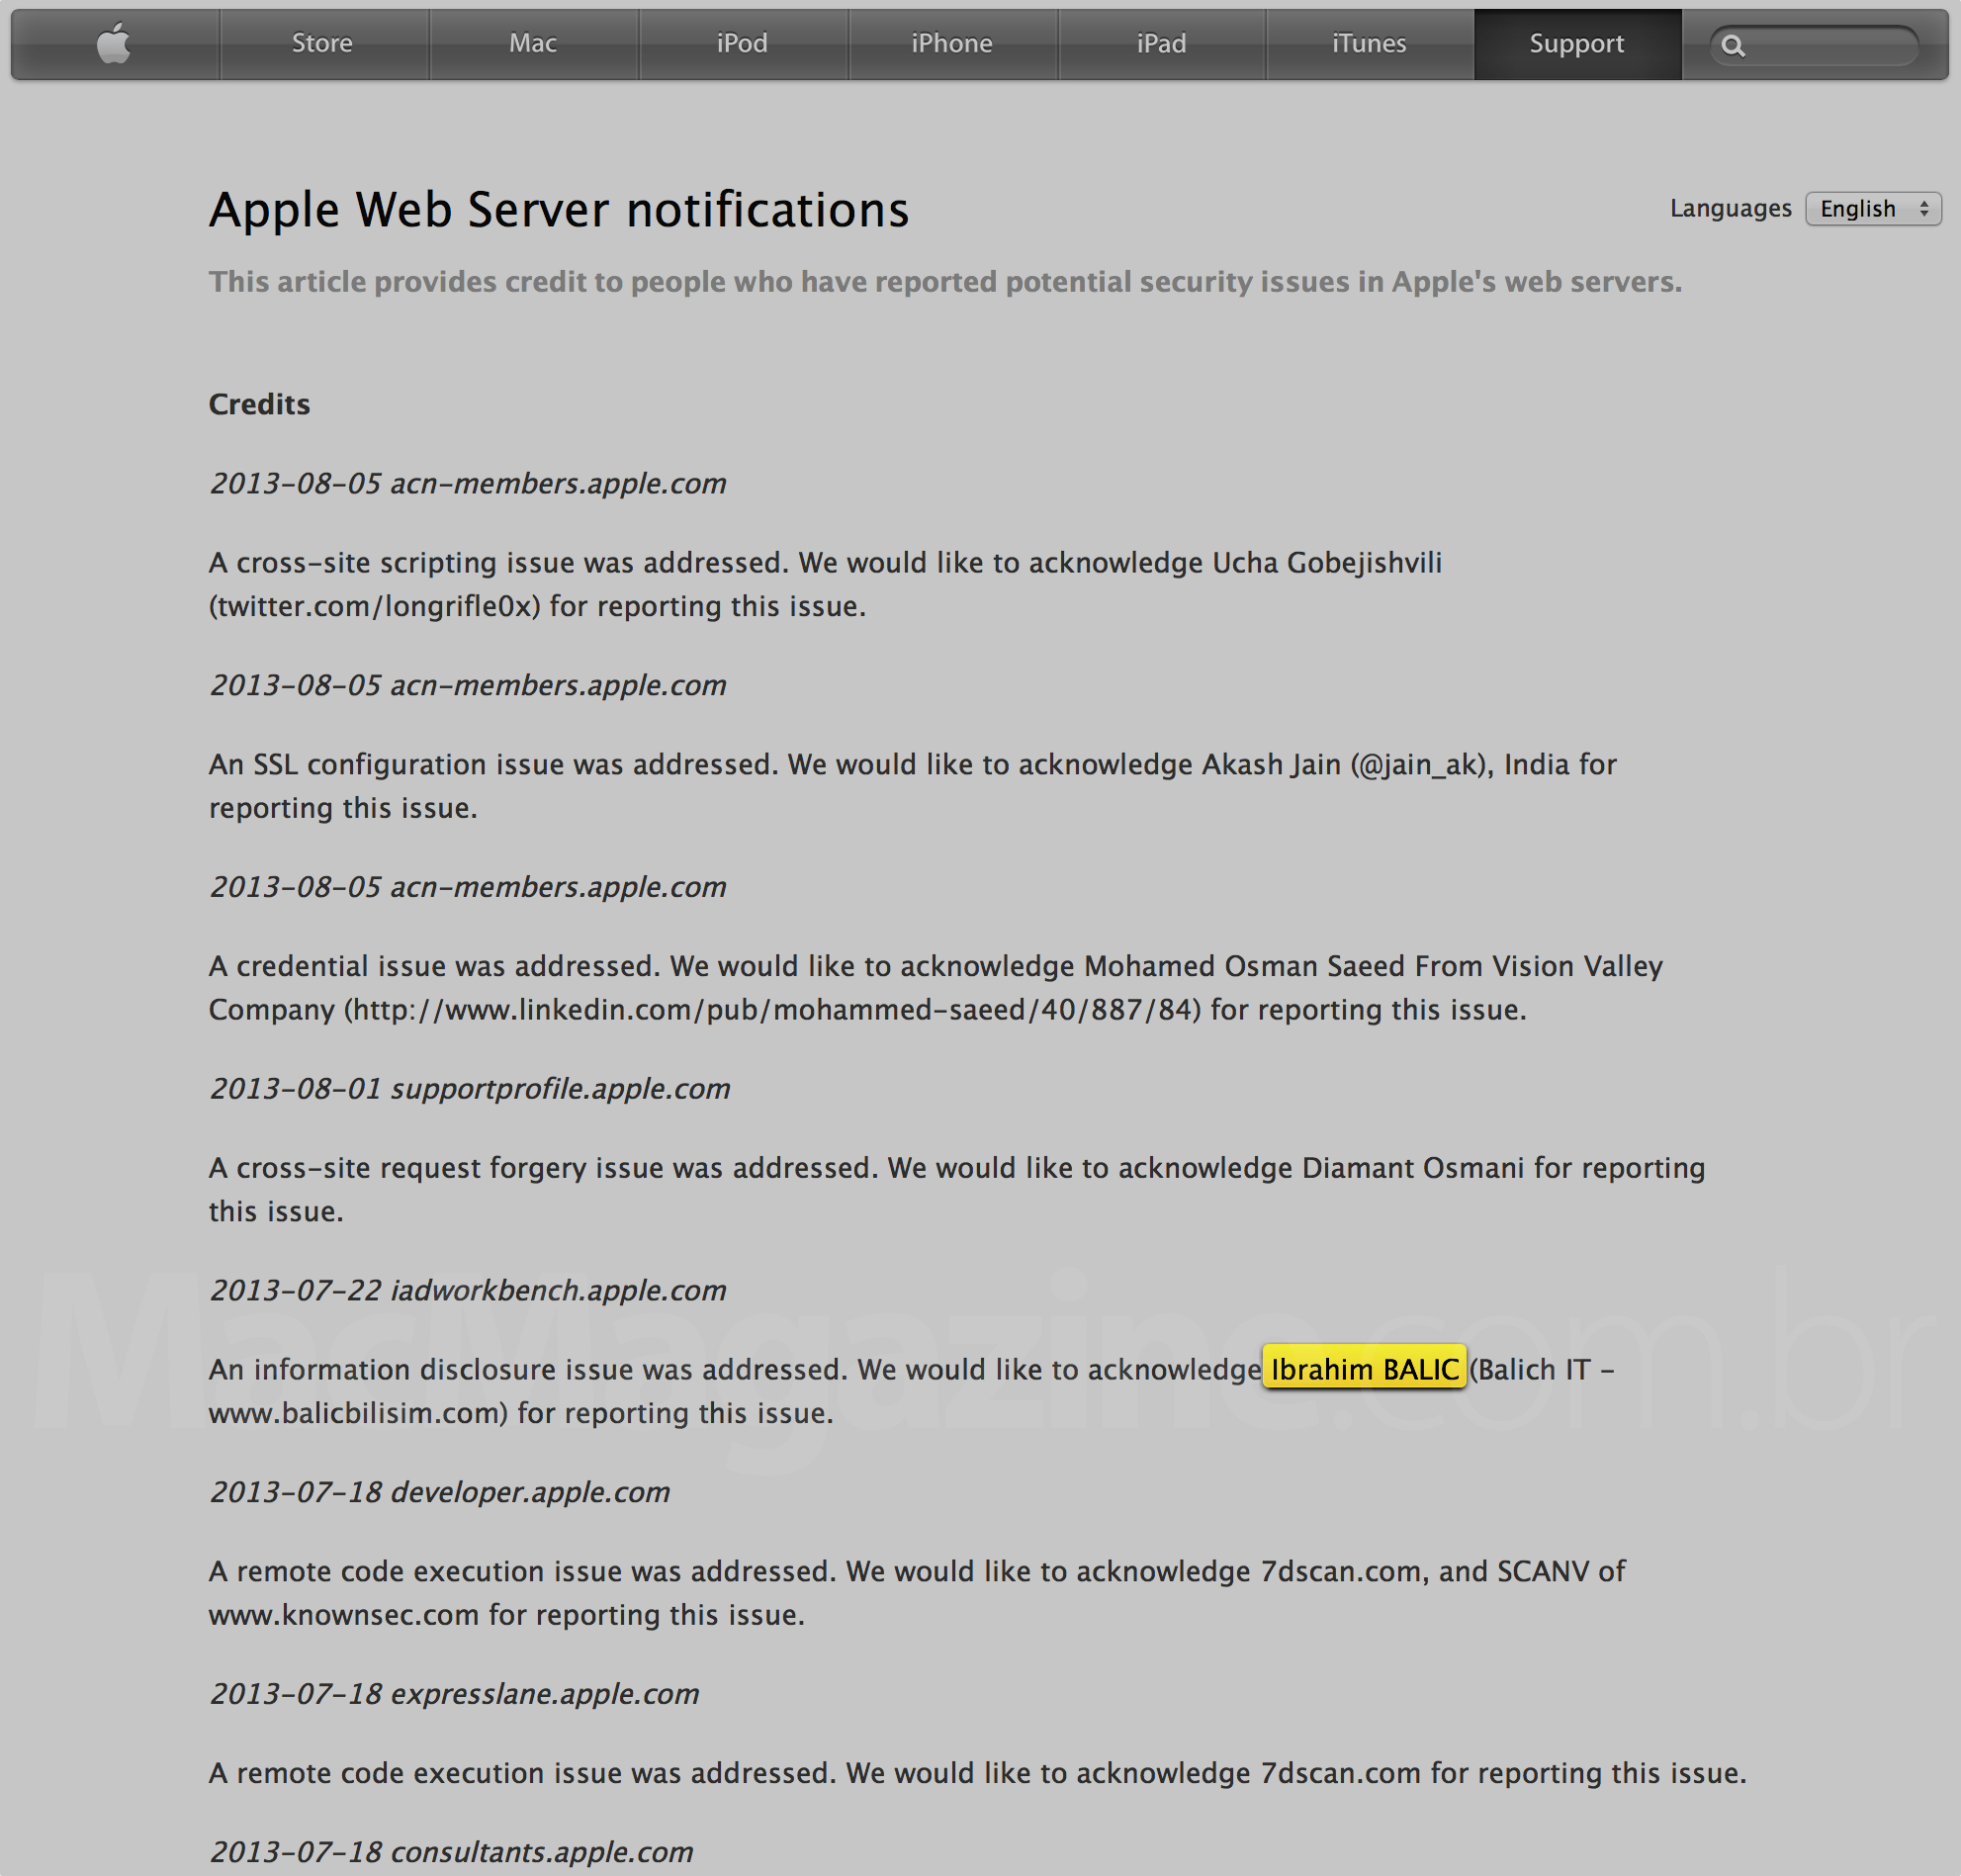 Crédito para Ibrahim Balic na página Apple Web Server Notifications